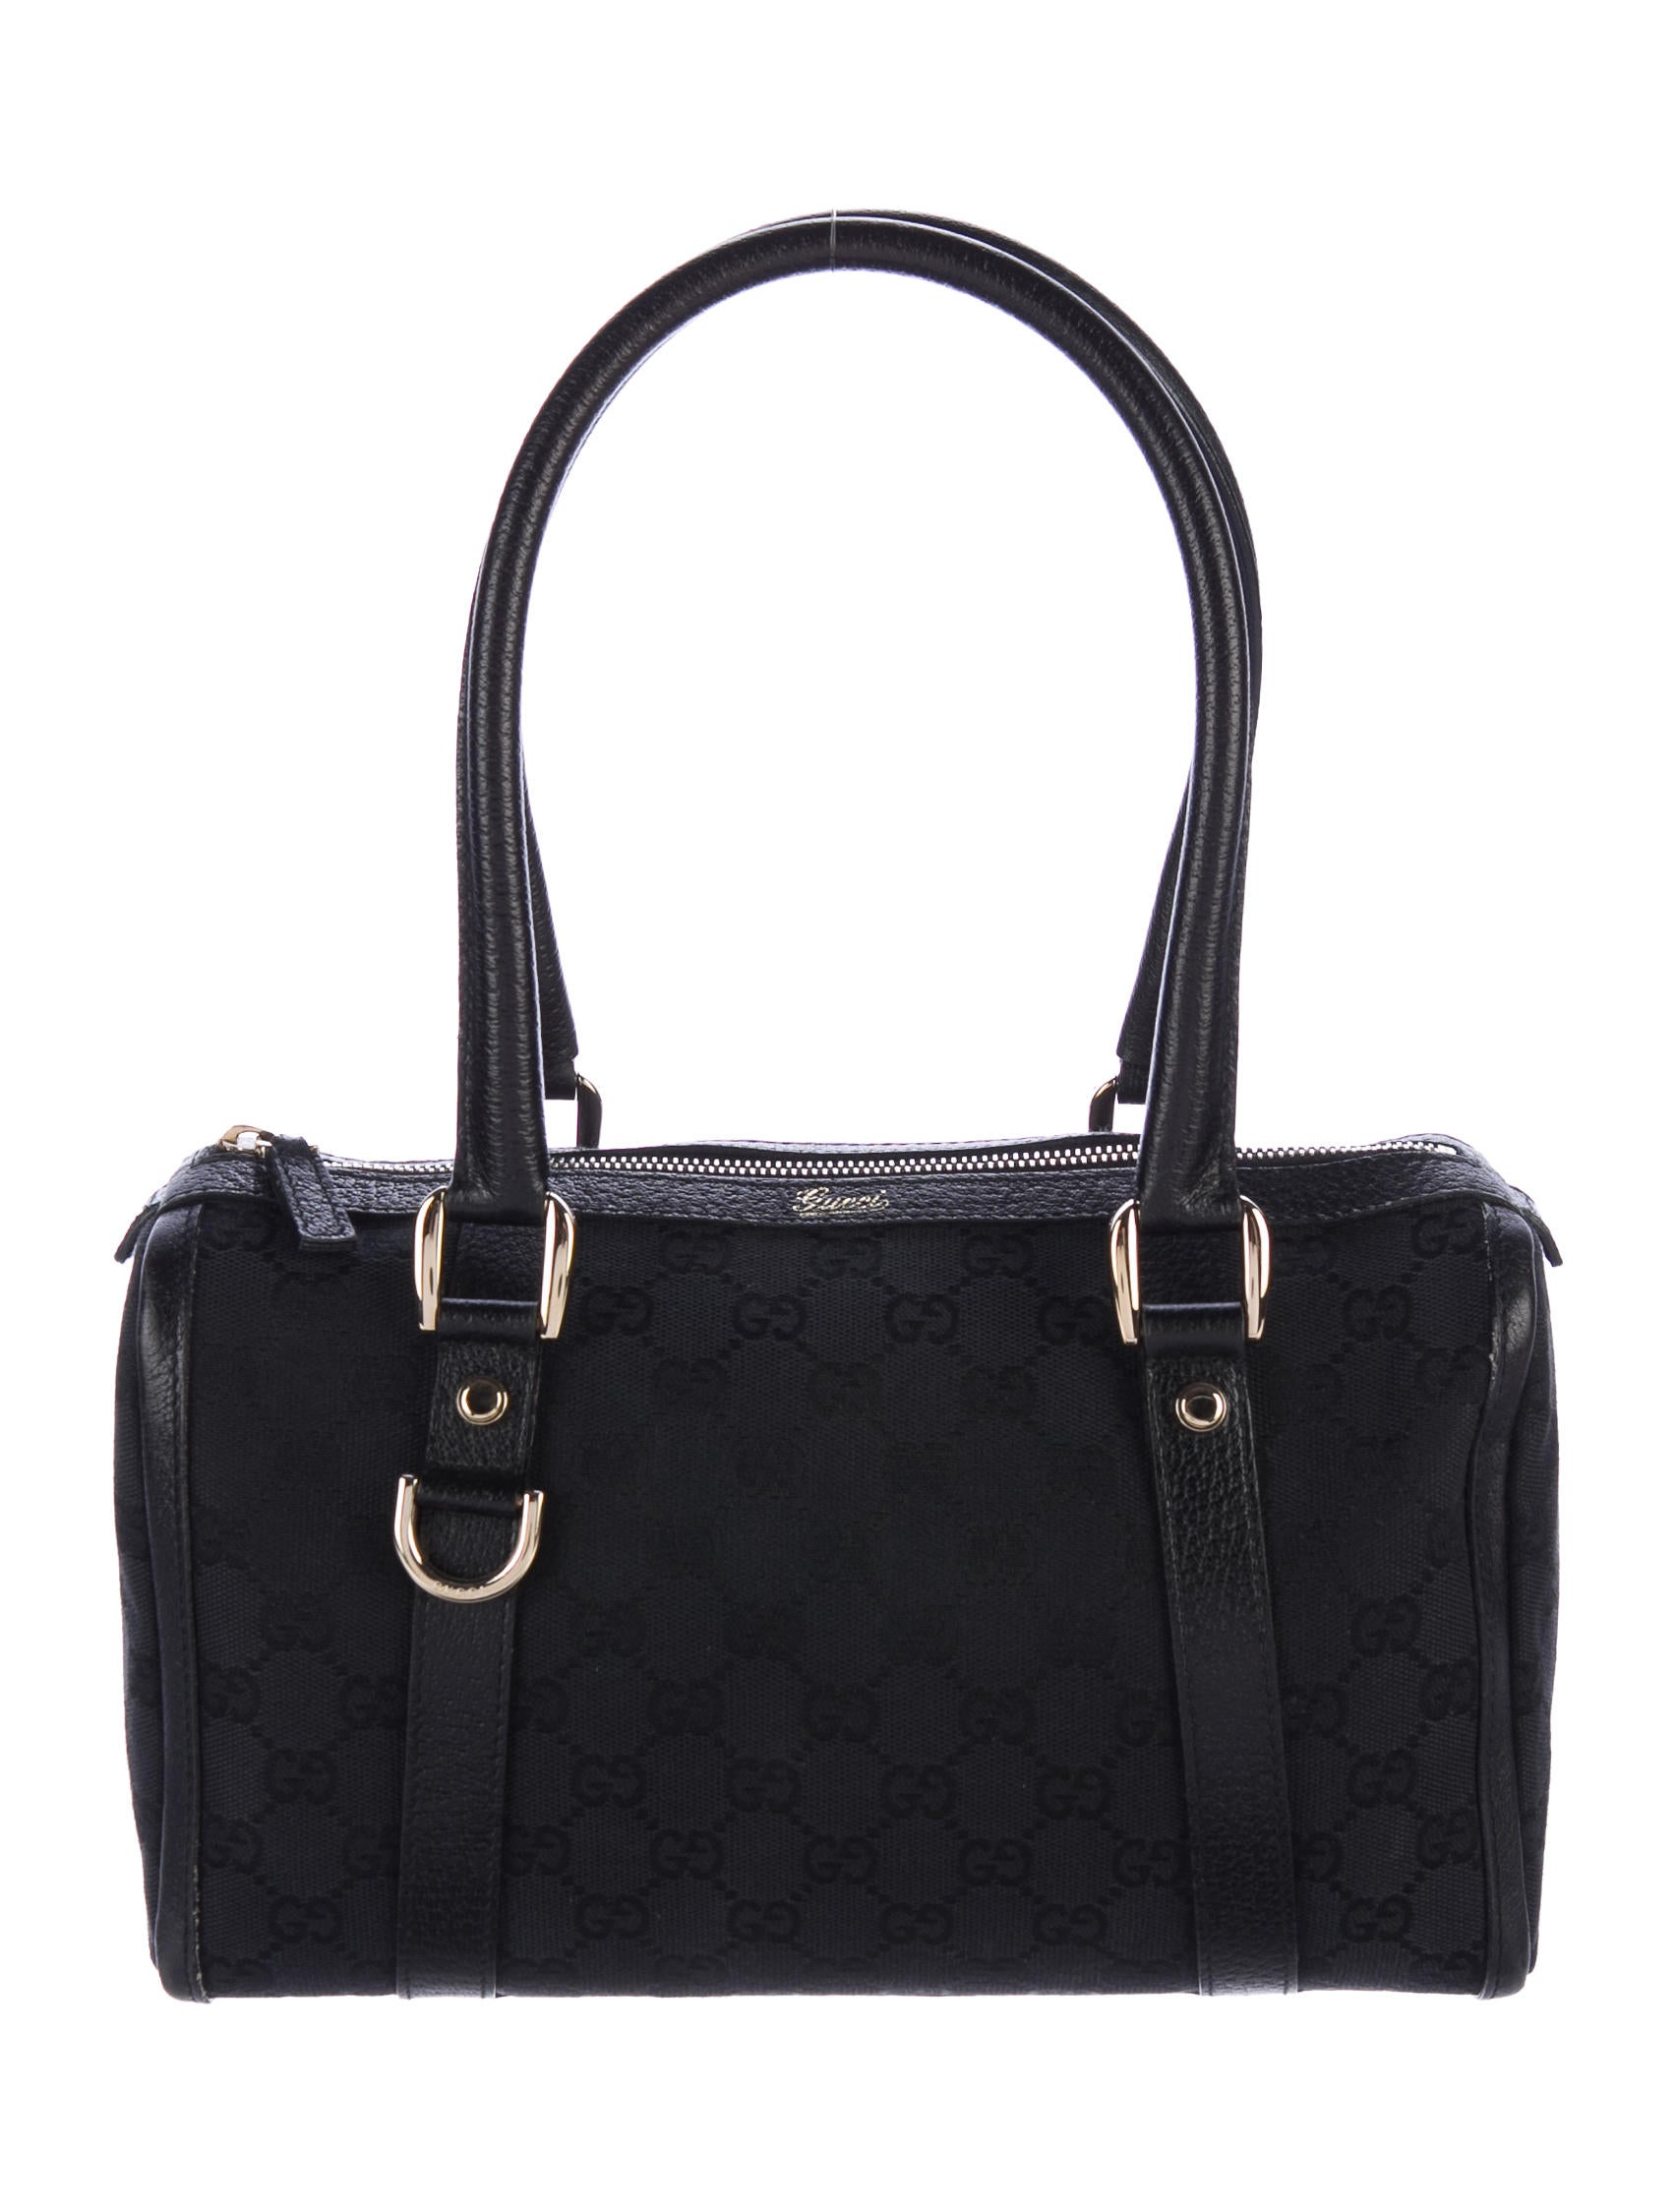 e9f0d1d2fdd865 Gucci Mini Boston Bag Size | Stanford Center for Opportunity Policy ...